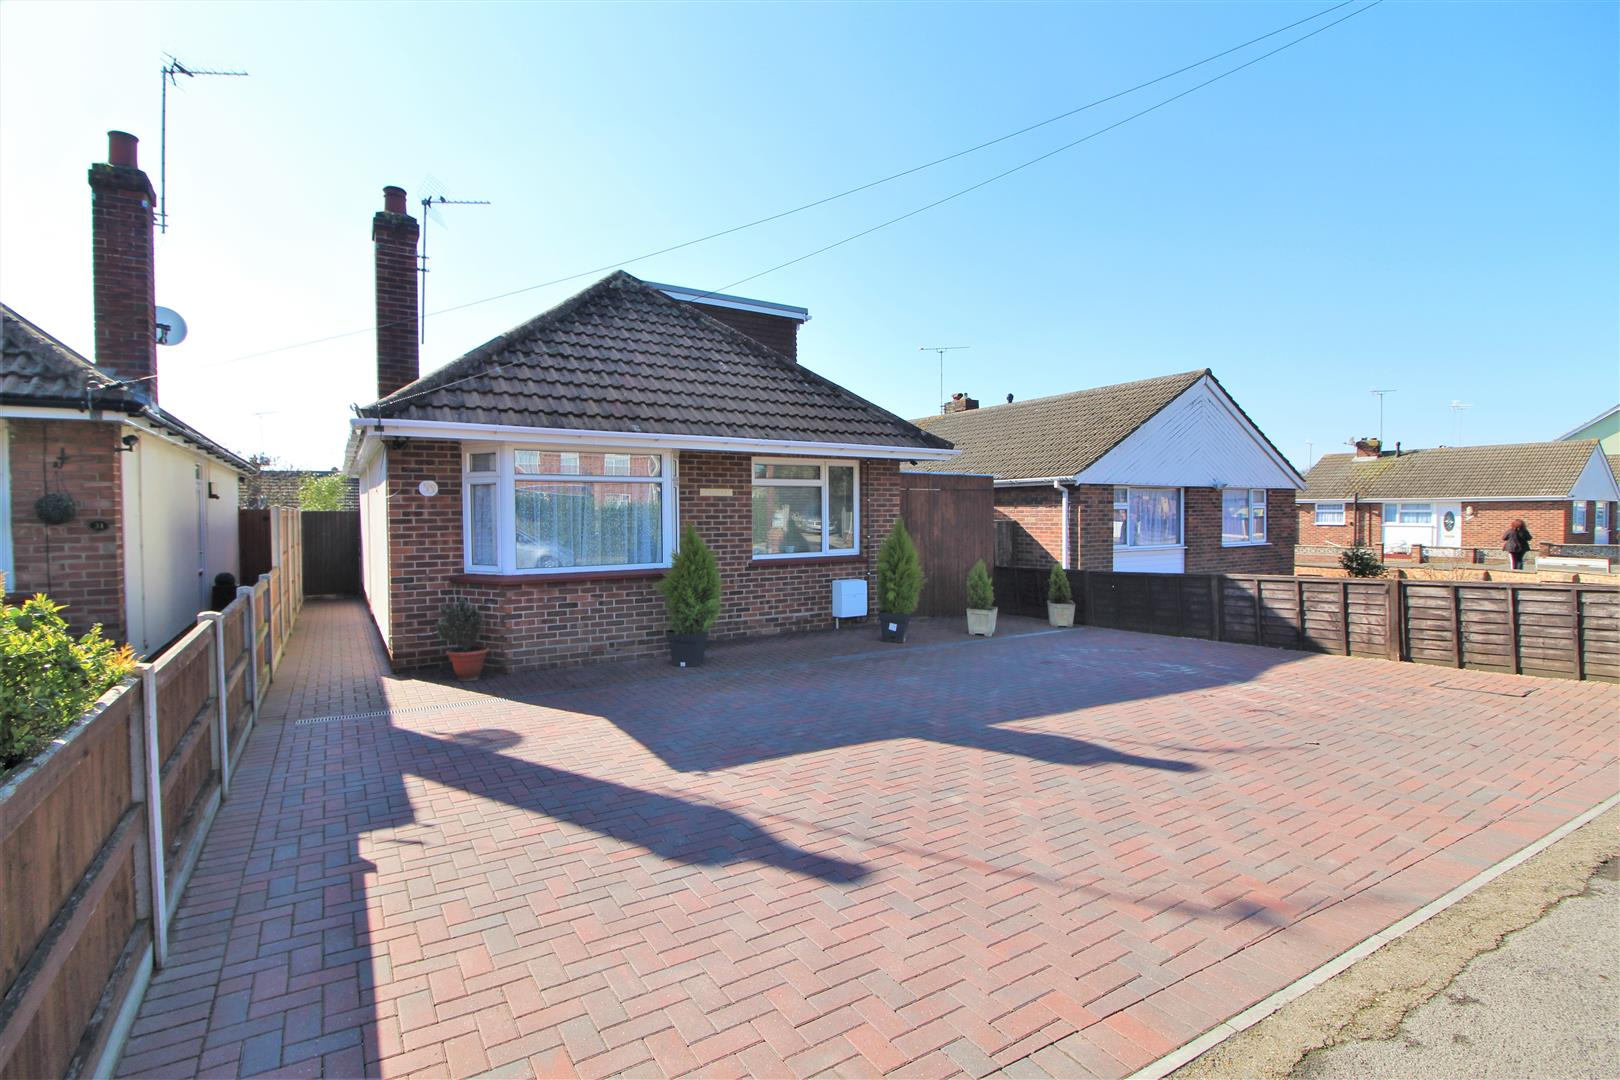 St. Johns Road, Clacton-On-Sea, Essex, CO15 4BS